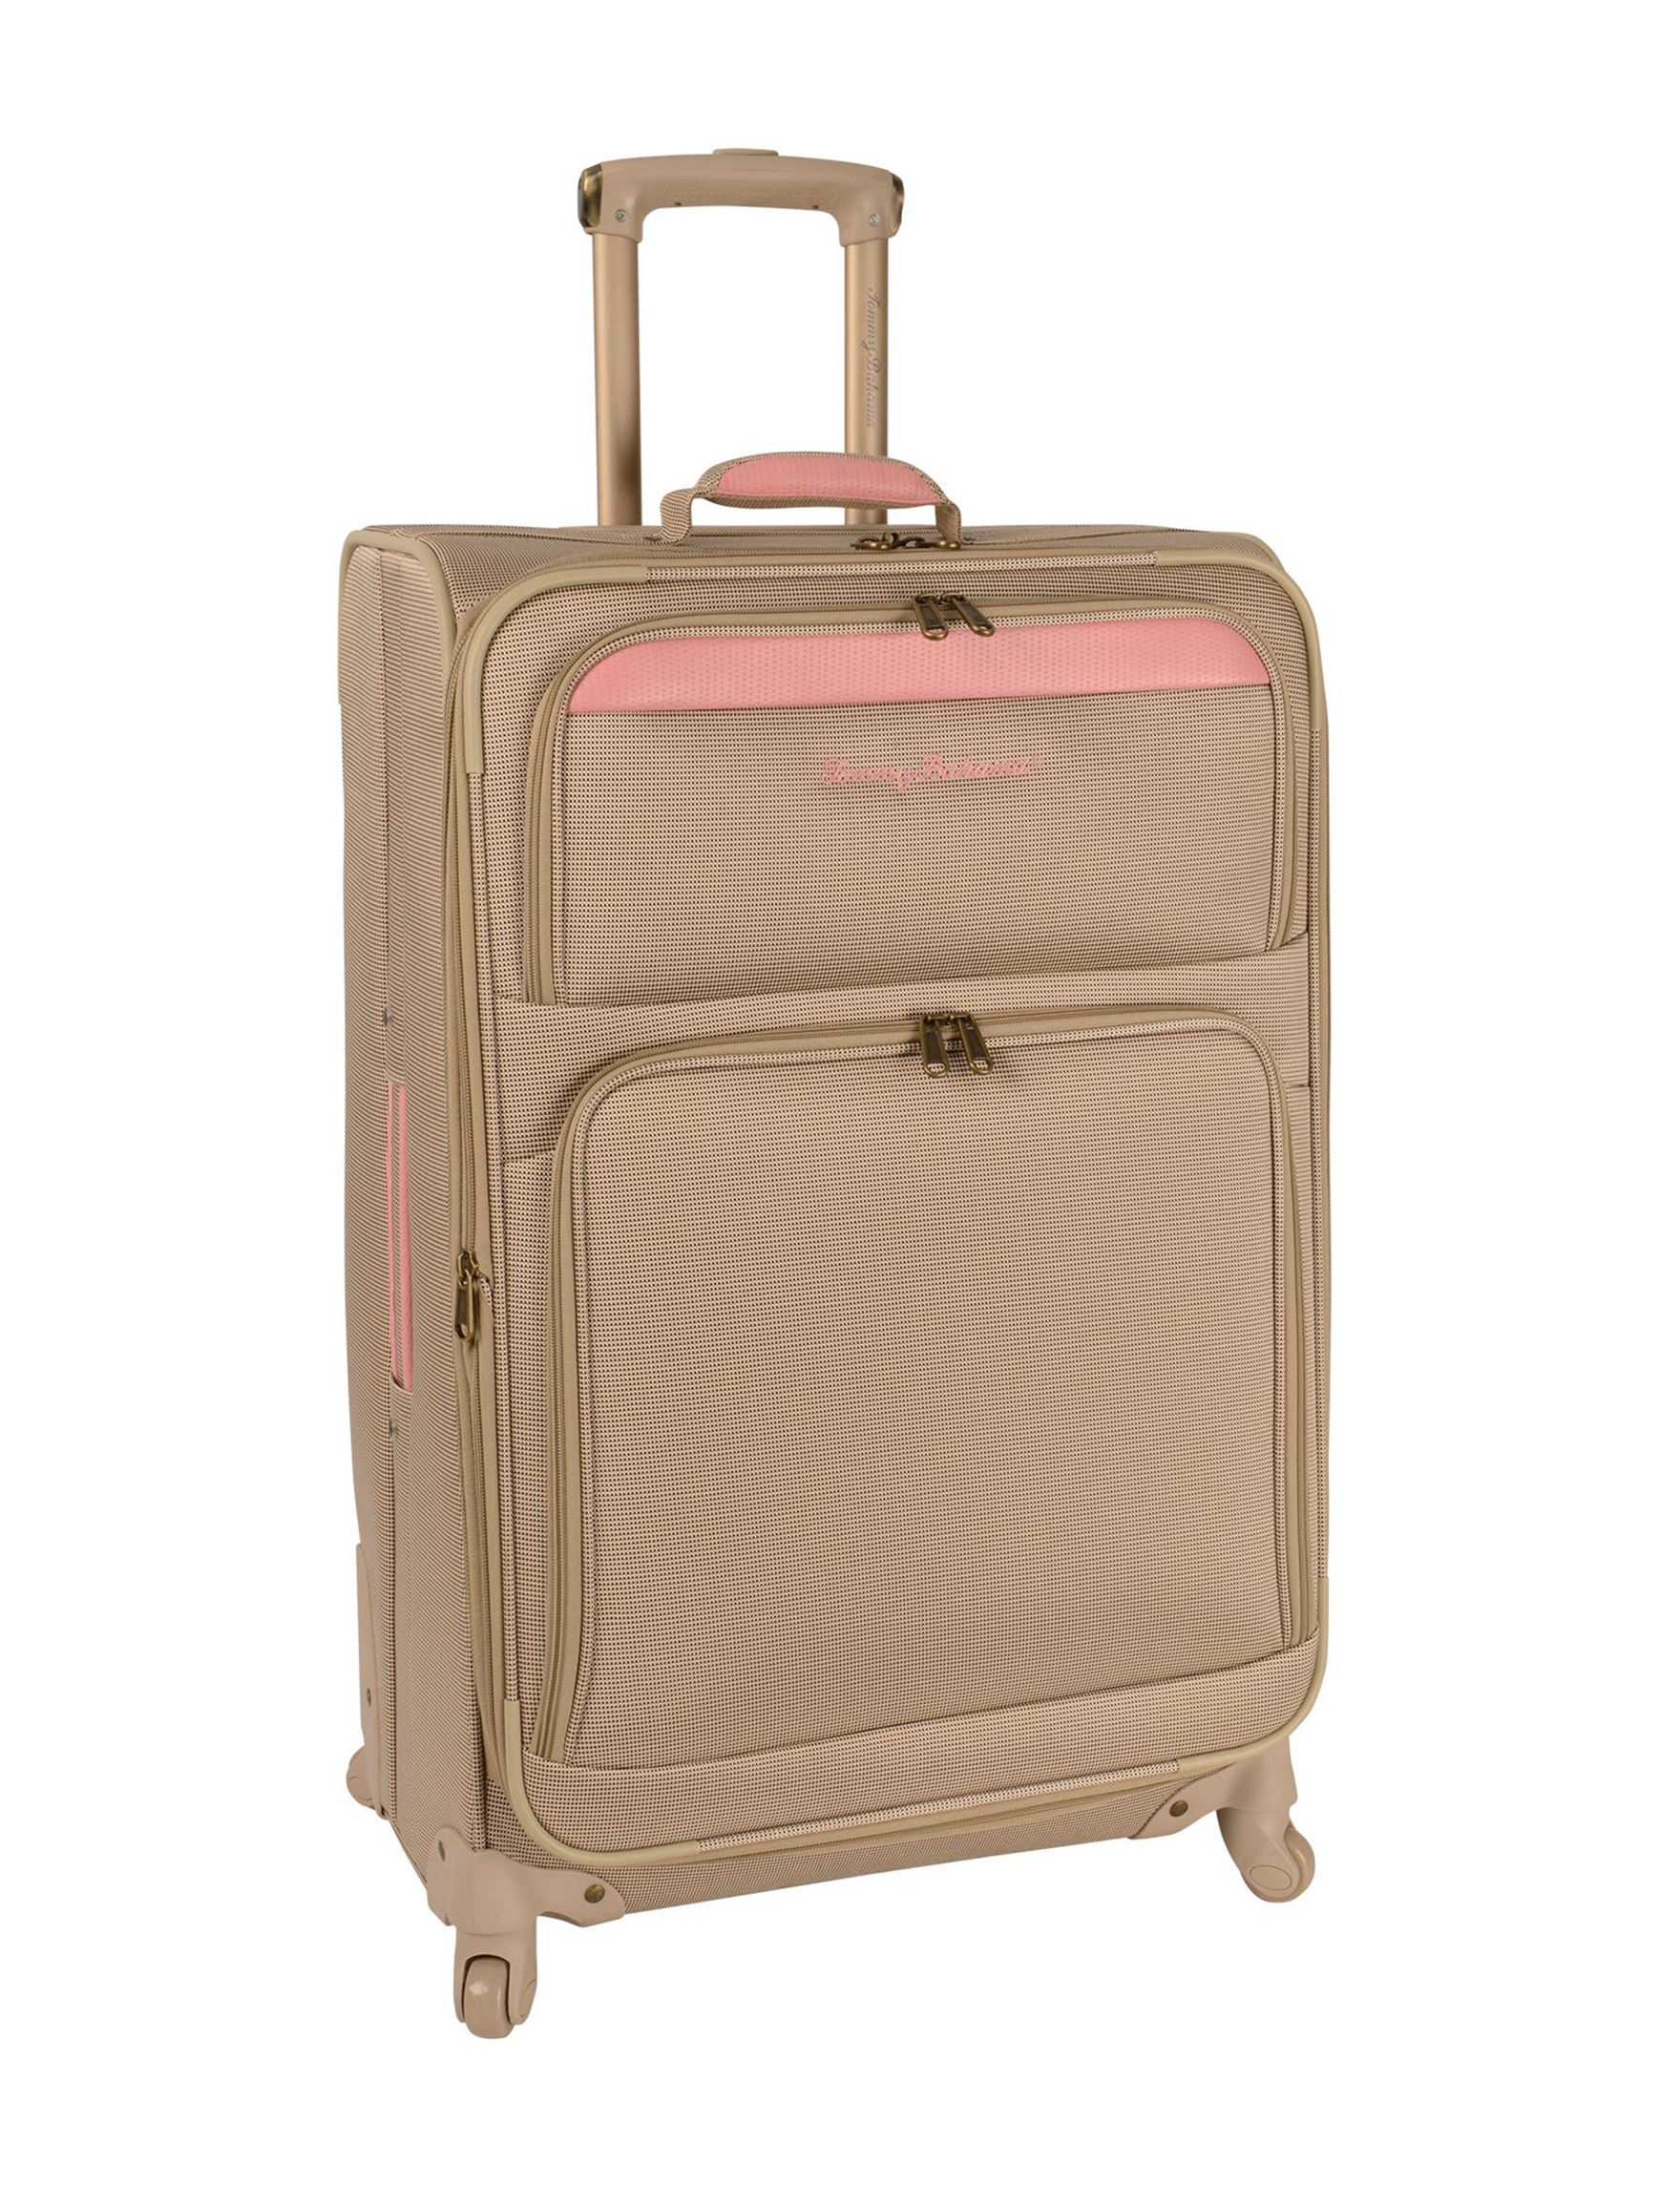 Tommy Bahama Pink Upright Spinners